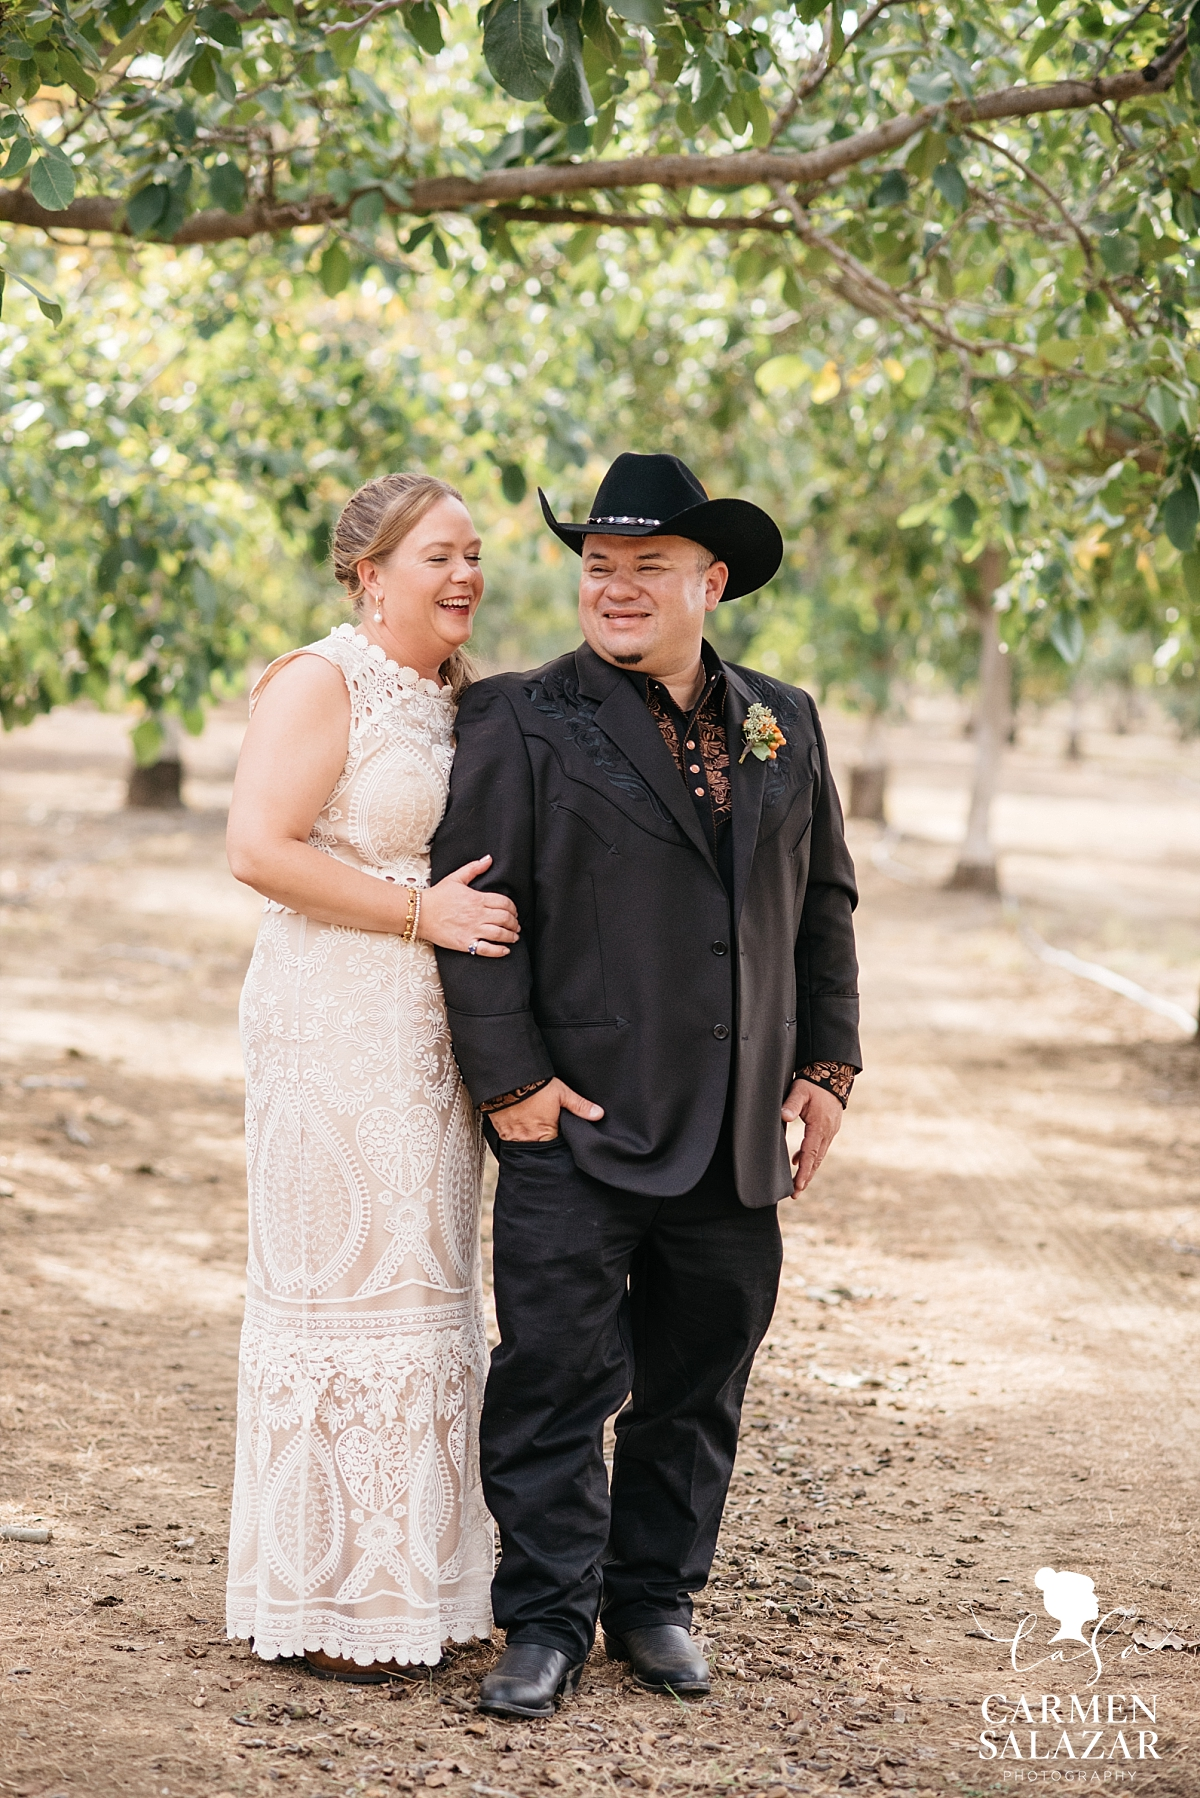 Laughing bride and groom at farm first look - Carmen Salazar